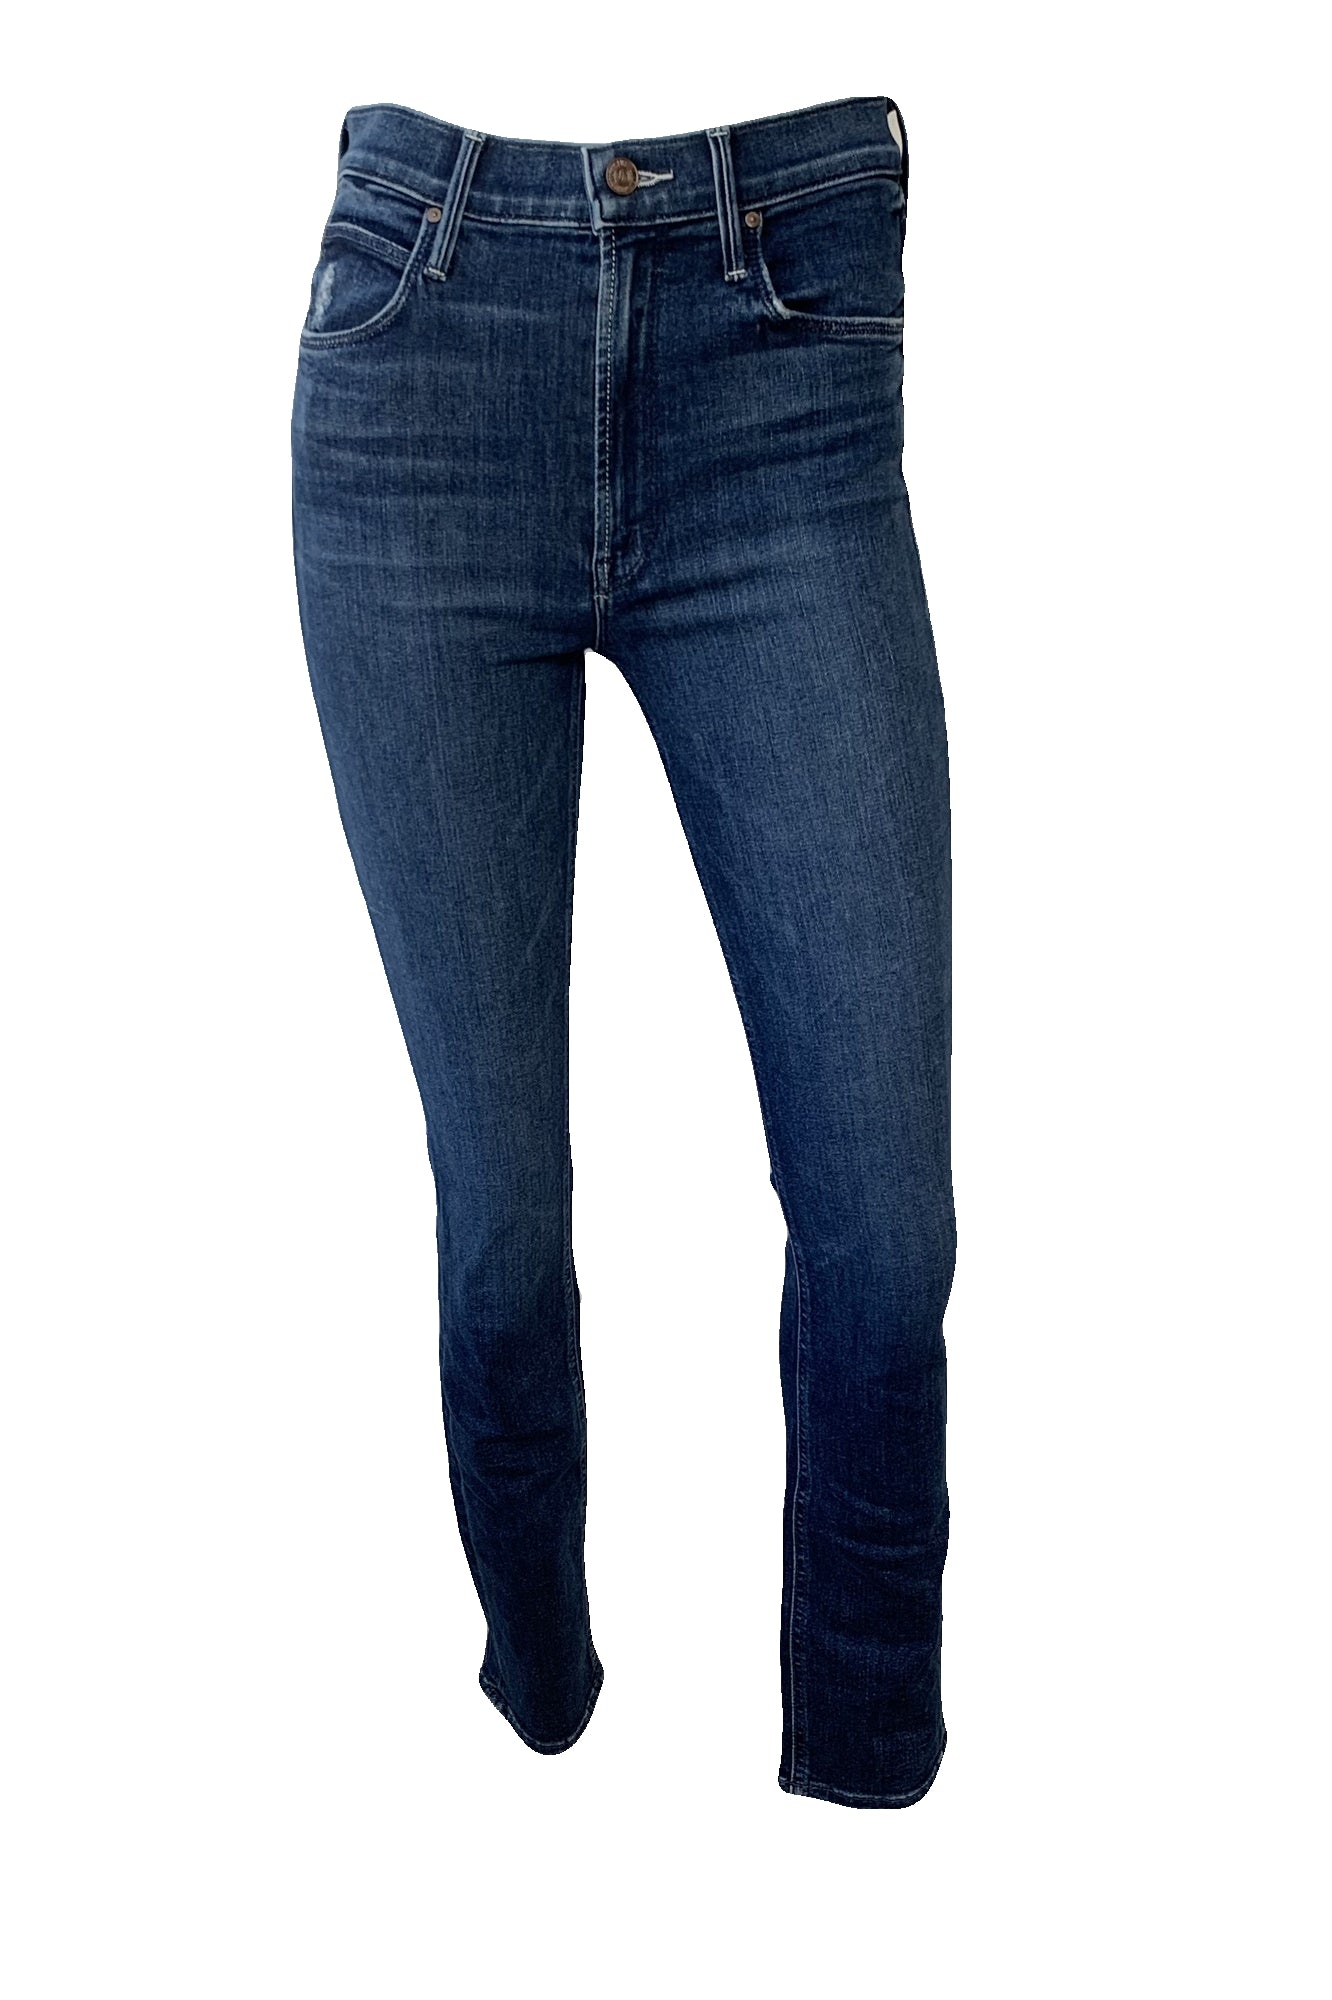 High Rise Dazzler Hover Jeans-Limited Sizes Available - Augusta Twenty